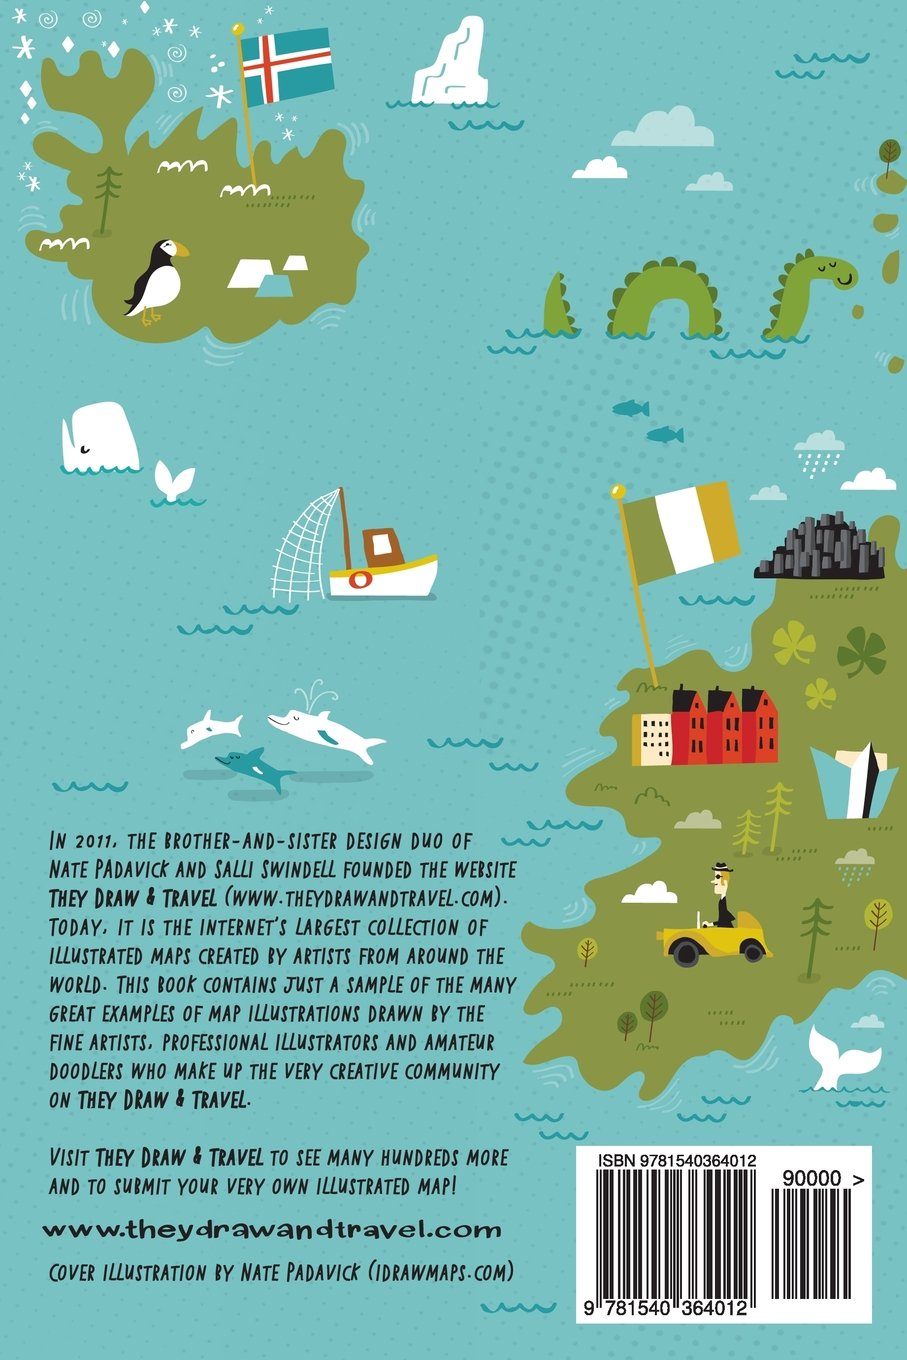 They Draw and Travel 96 Illustrated Maps of the UK and Iceland